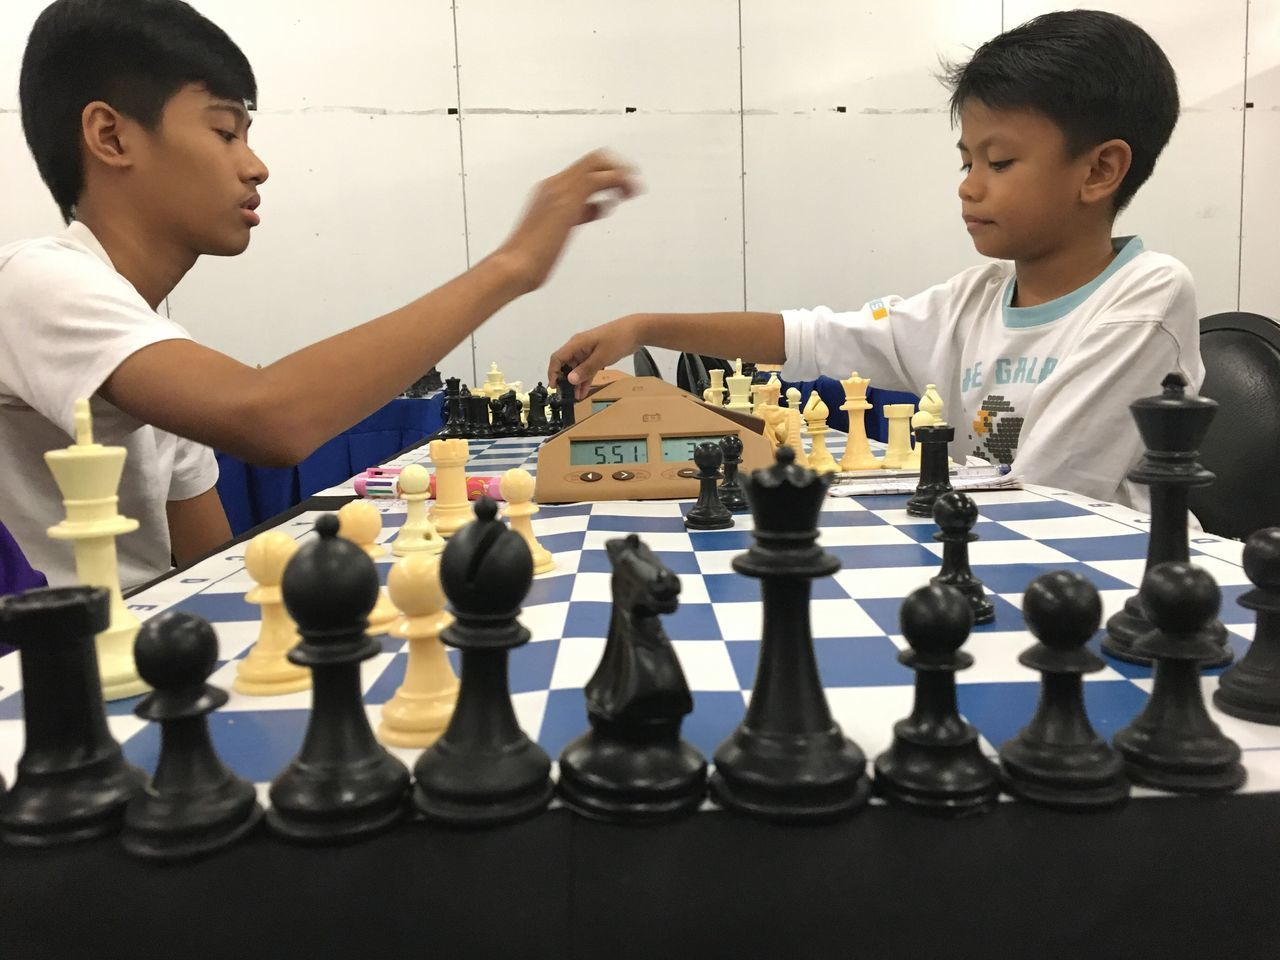 chess, chess piece, boys, strategy, playing, leisure games, chess board, childhood, competition, learning, concentration, education, leisure activity, indoors, real people, elementary age, challenge, knight - chess piece, pawn - chess piece, school uniform, game, day, intelligence, queen - chess piece